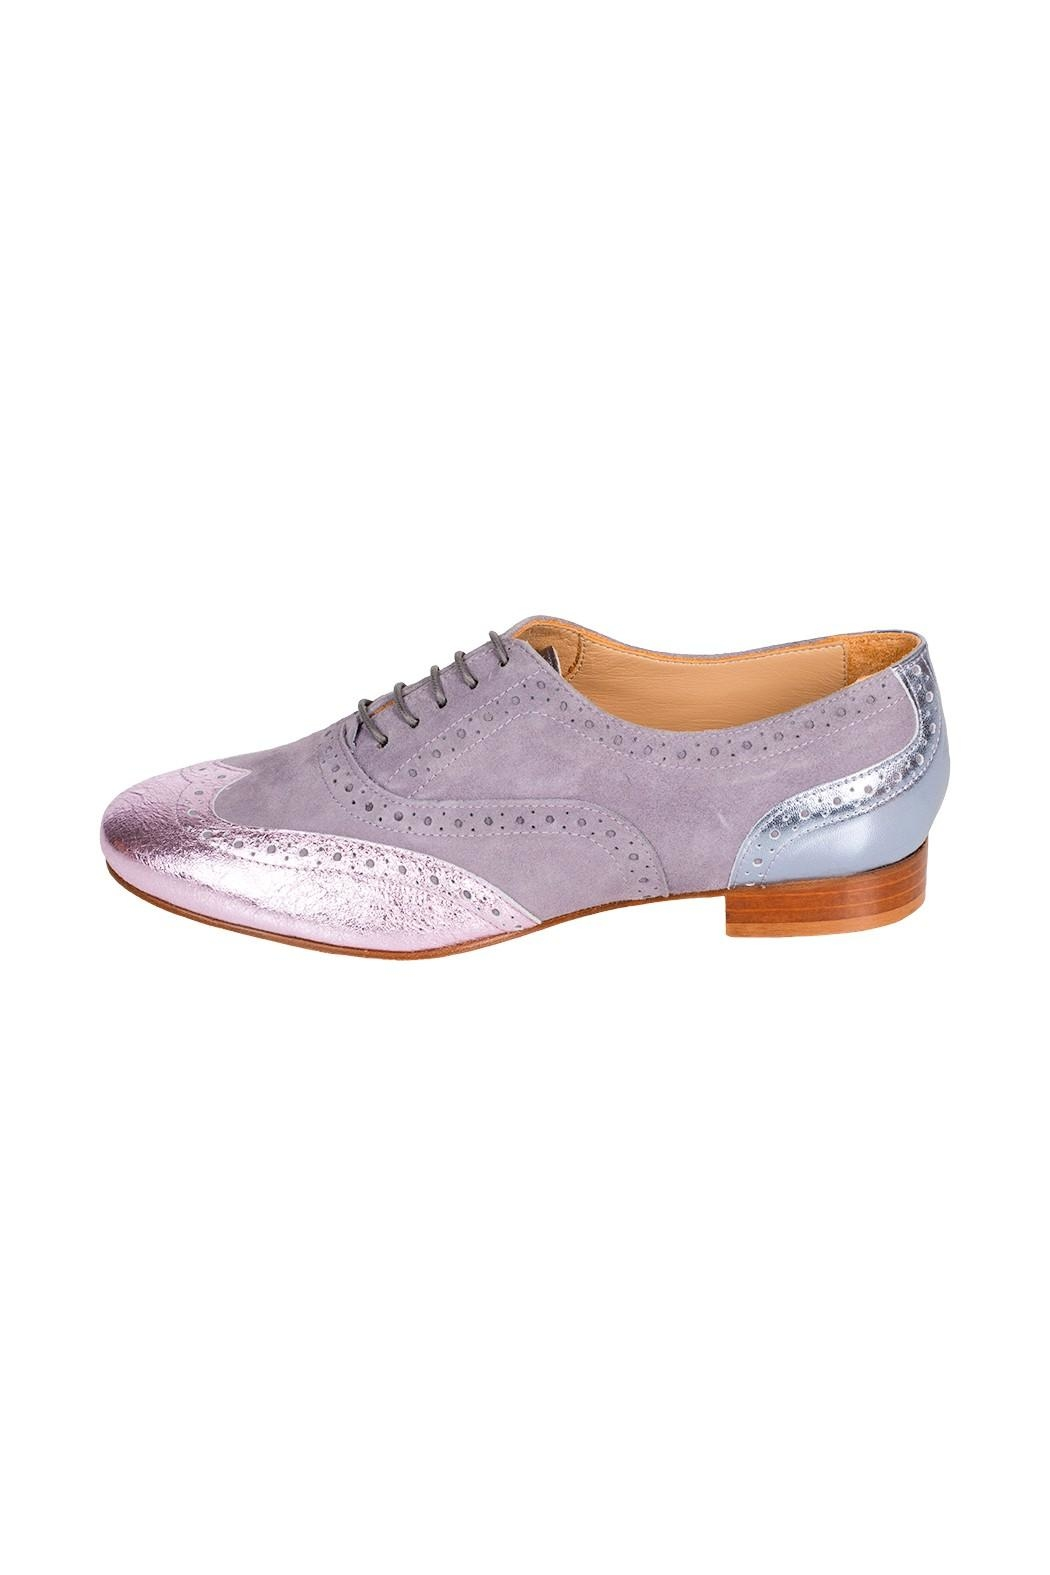 Pascucci Lilac-Leather Flat Brogue - Main Image